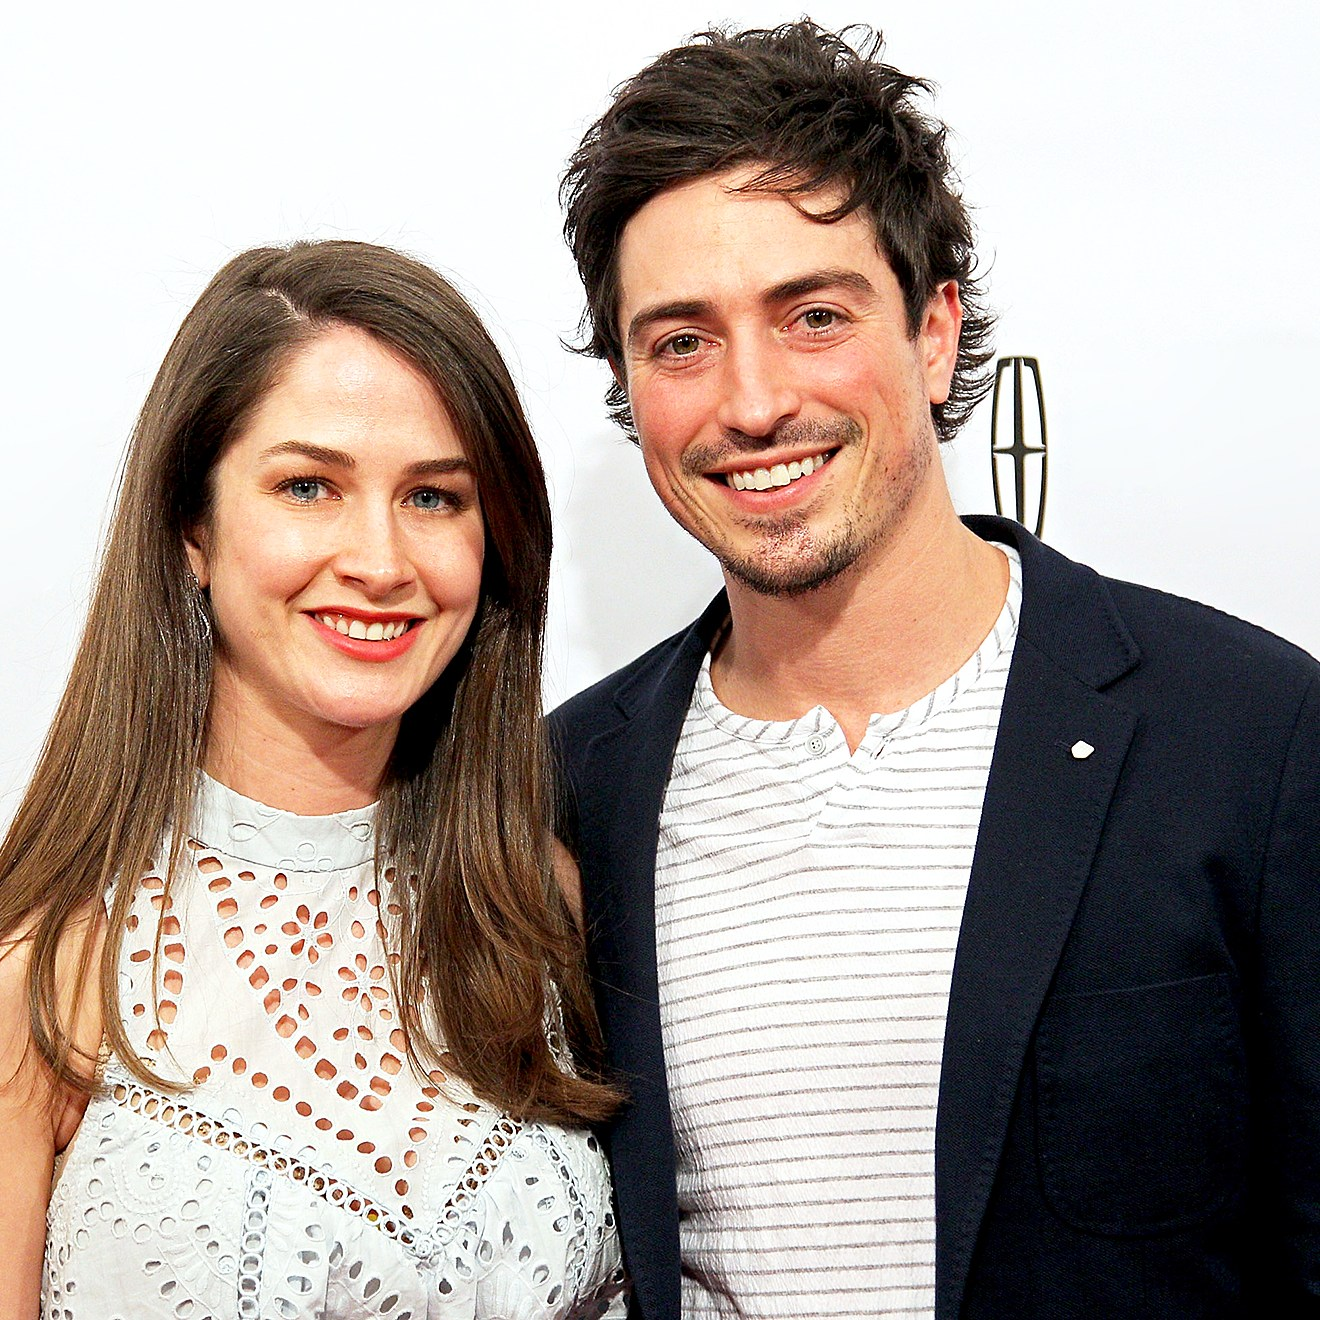 """Ben Feldman and Michelle Mulitz attend the """"Between Us"""" Premiere at SVA Theatre 1 on April 18, 2016 in New York City."""